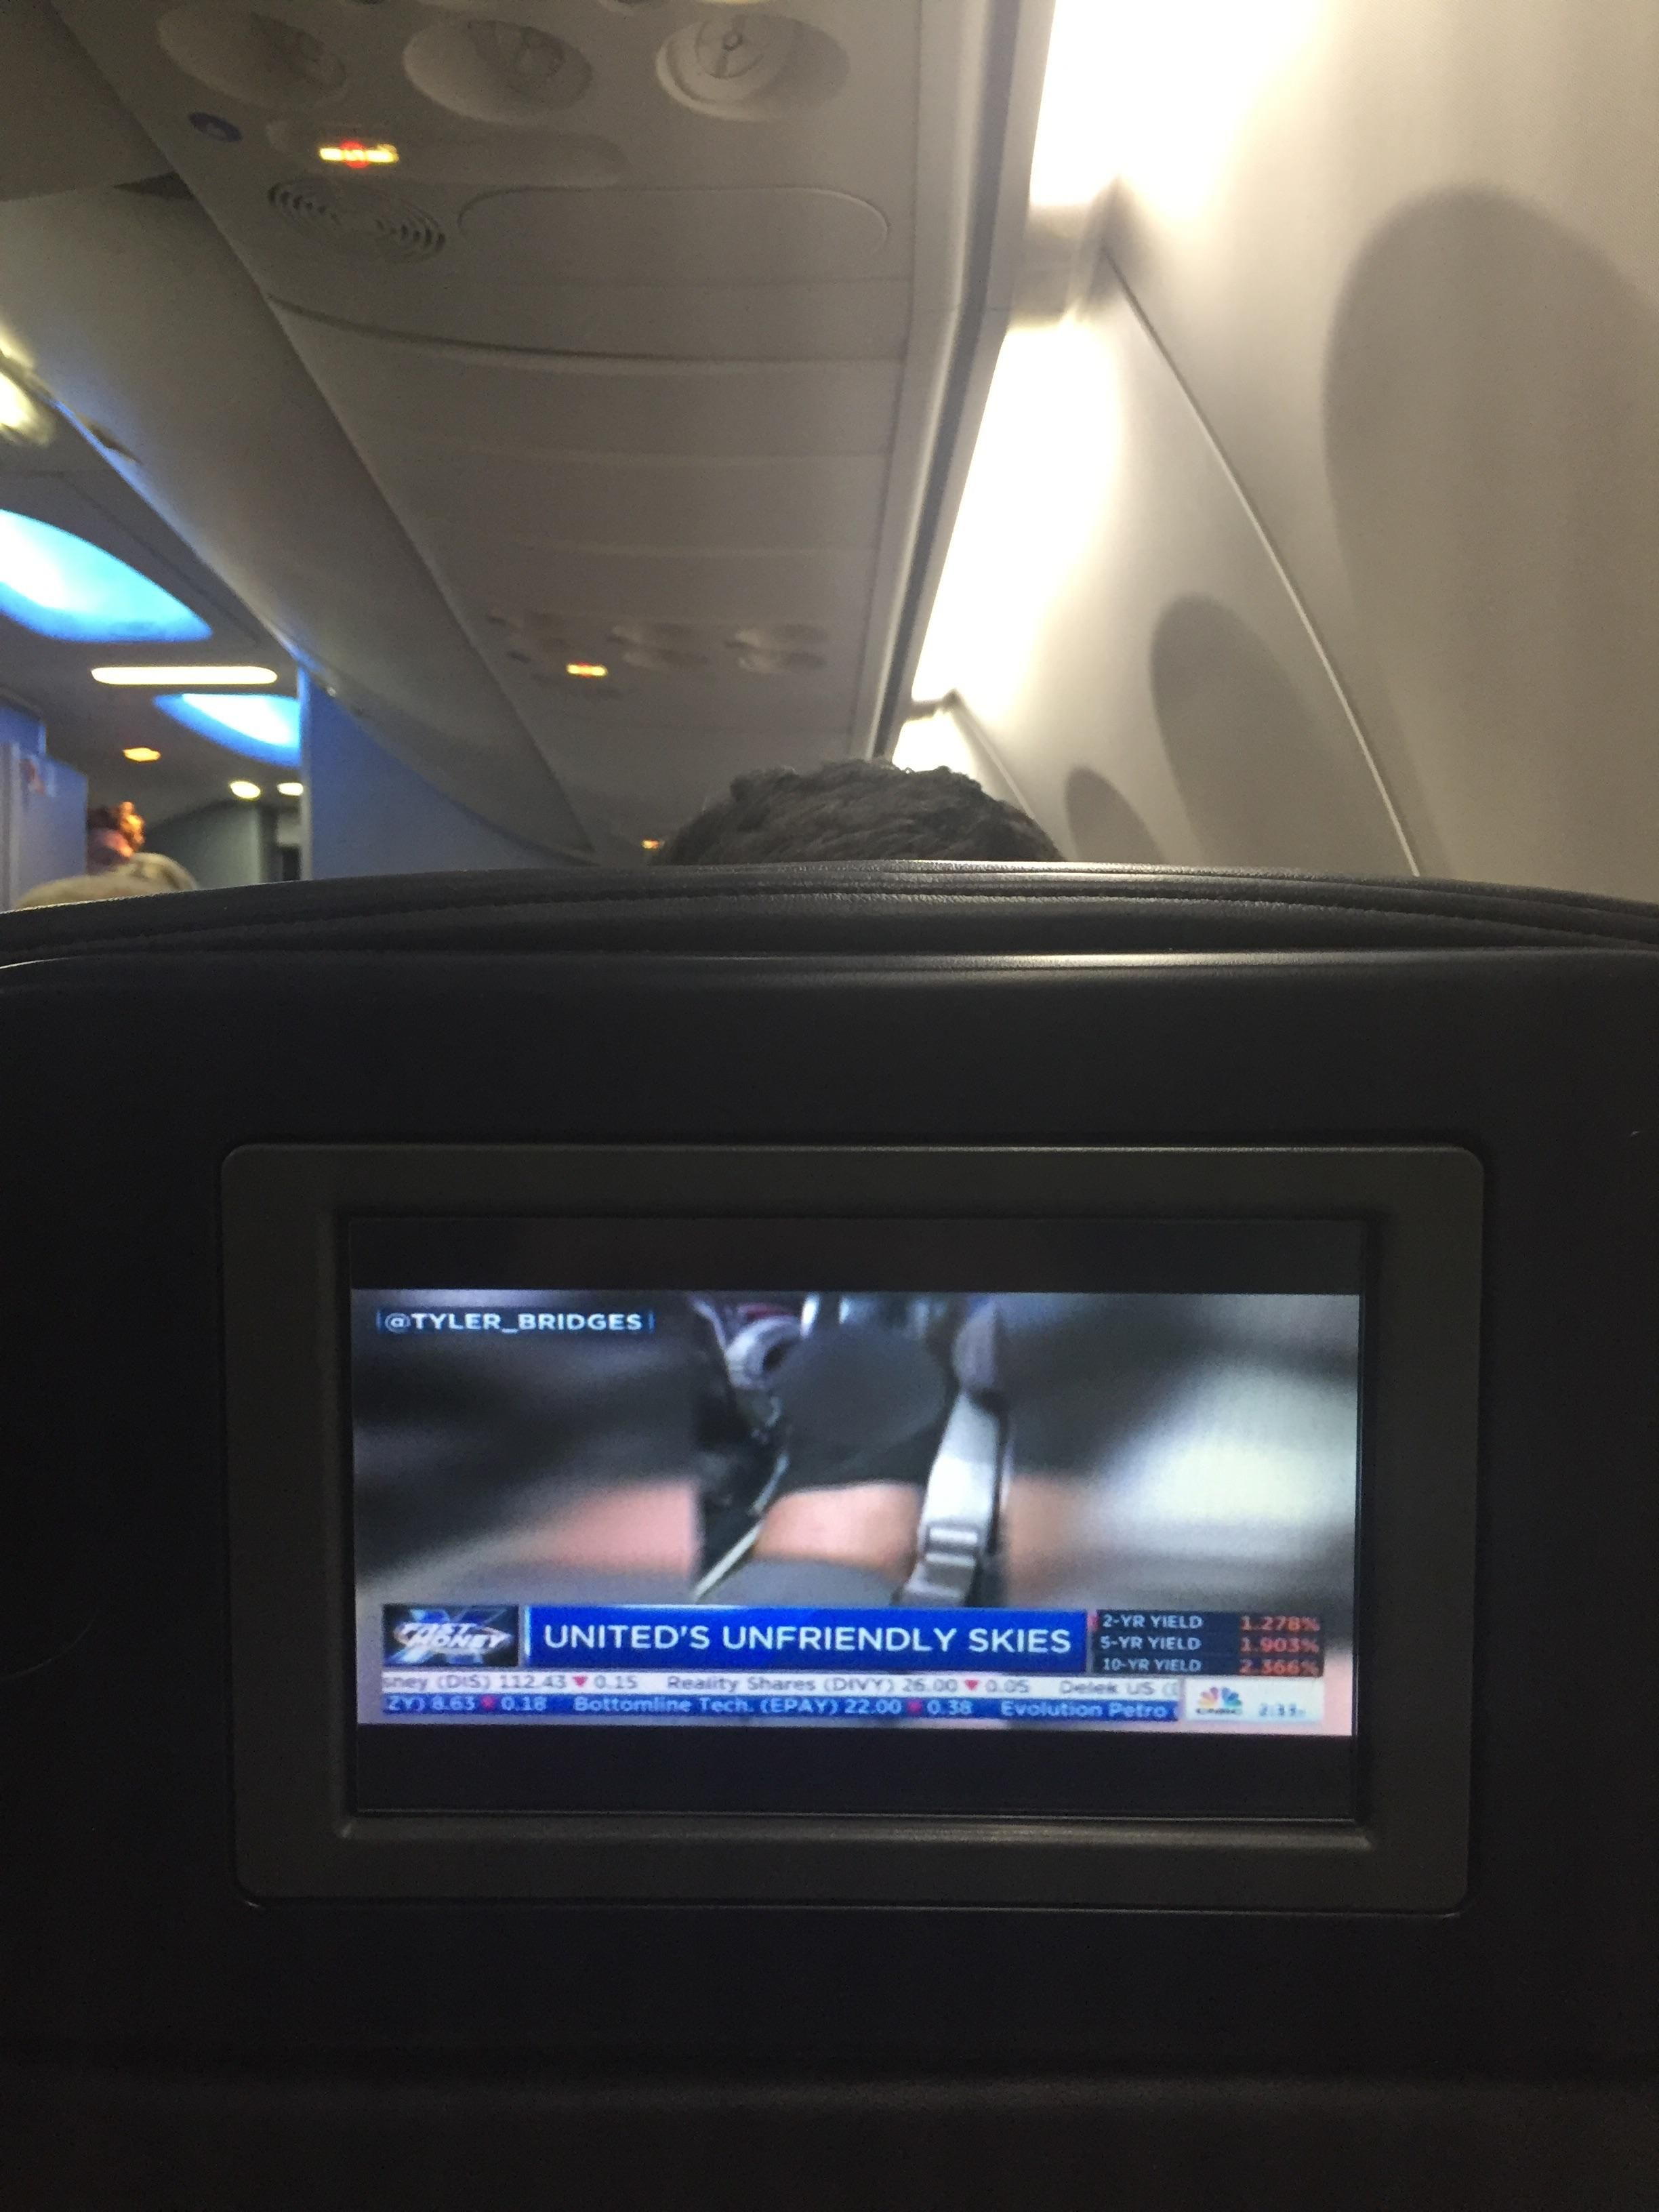 On a United Airlines flight while all the TV's play a newsreport about their own mishap.